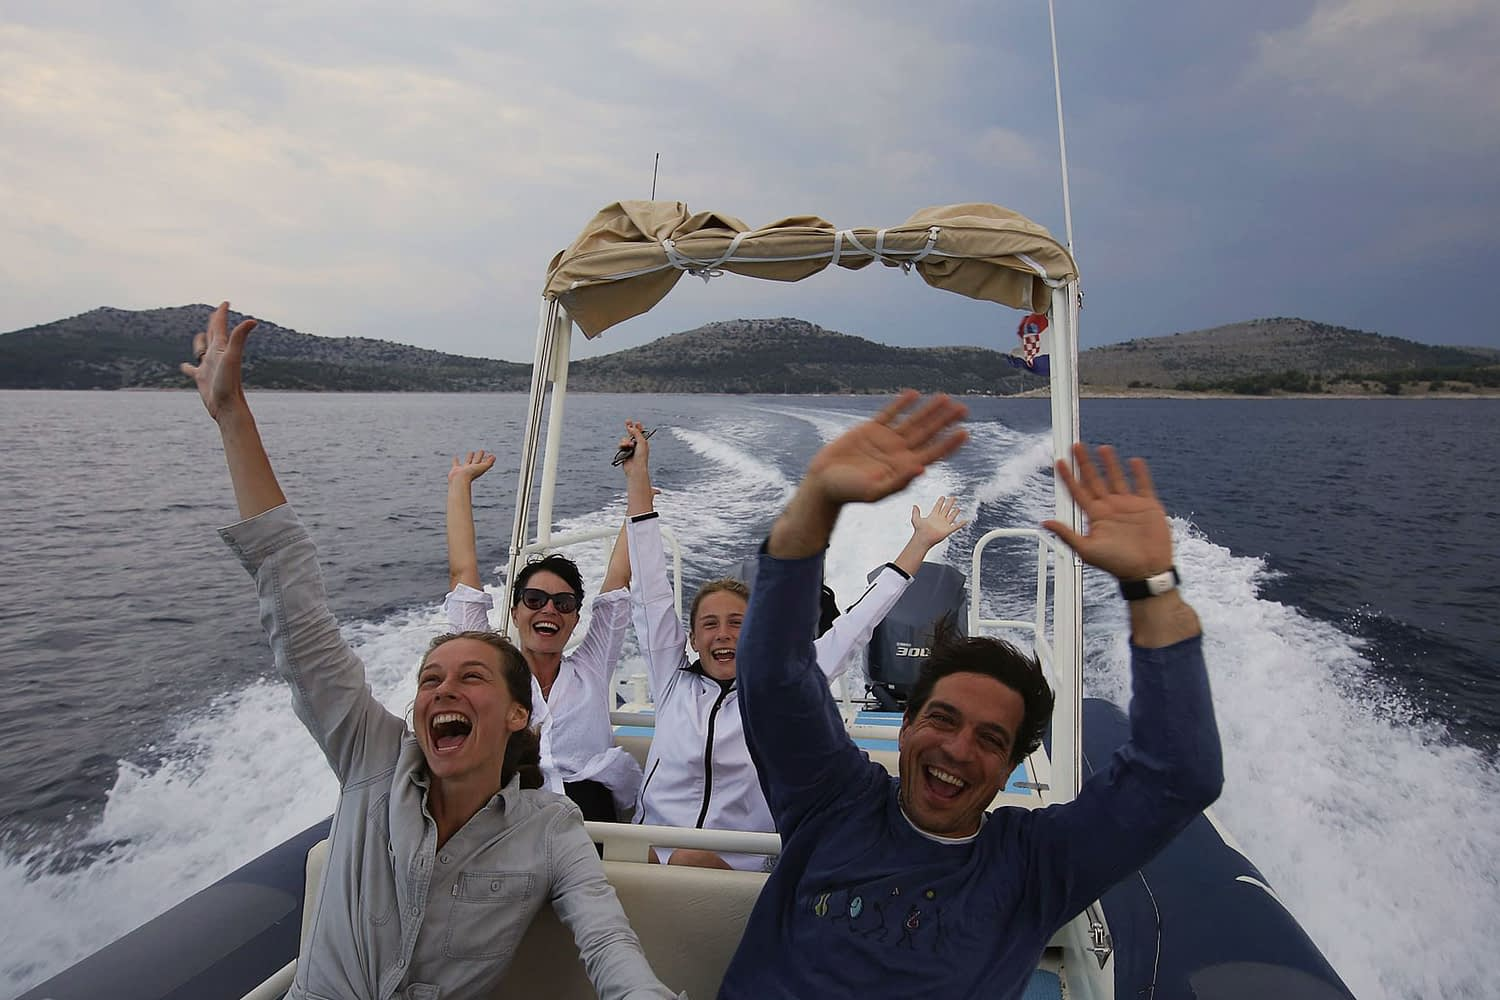 Archipelago Tours Kornati private tour - Kornati Experience Private Boat Tour photo of tourists on the boat